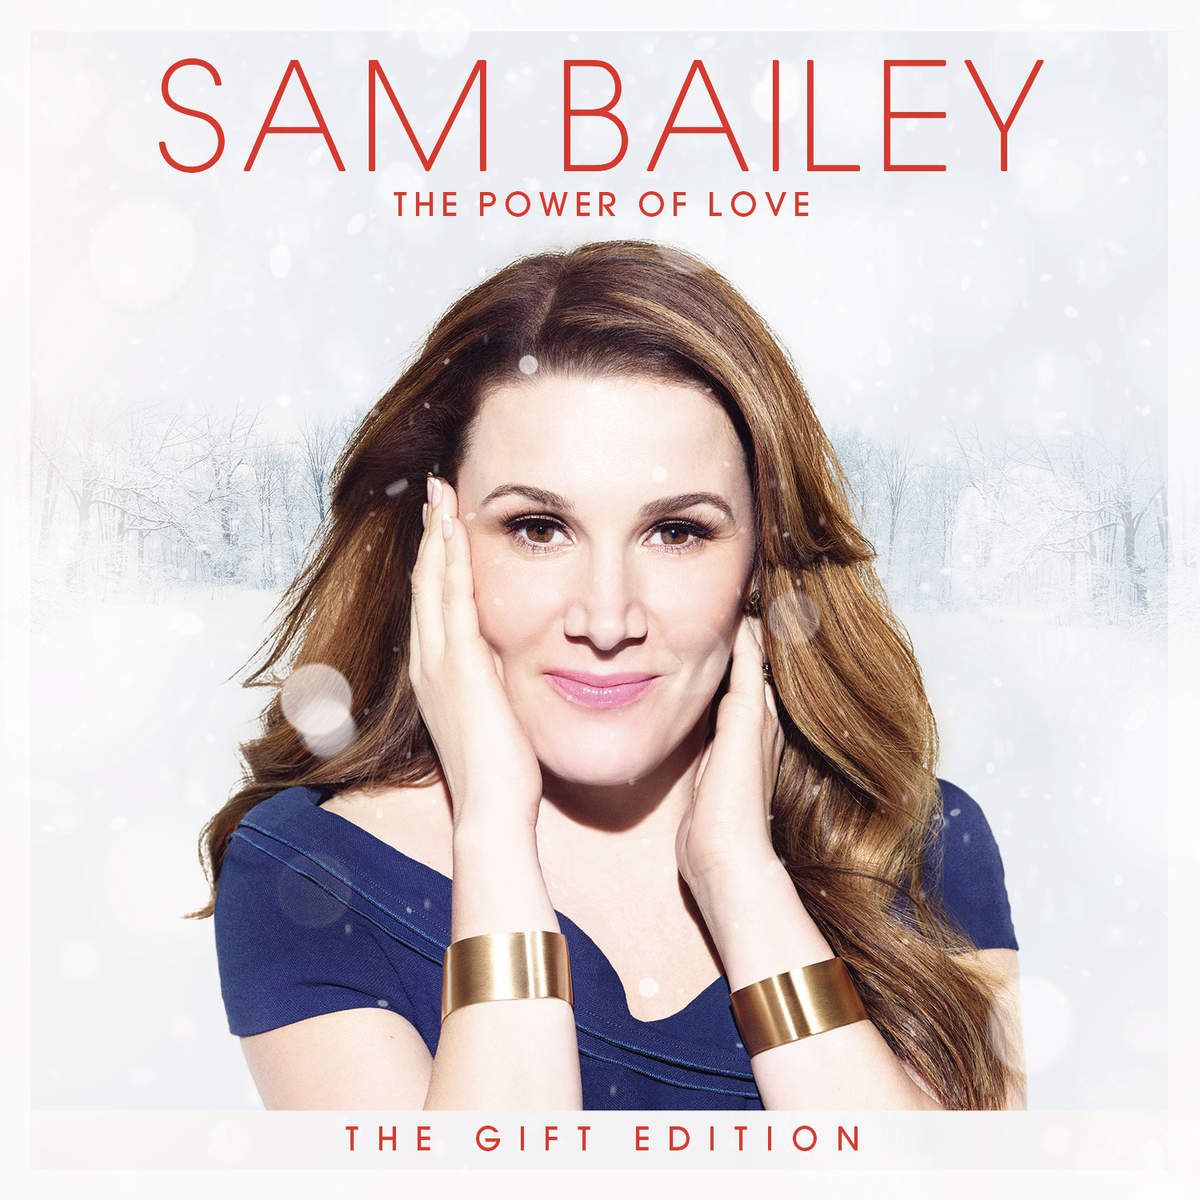 Sam-Bailey-The-Power-of-Love-The-Gift-Edition-2014-1200x1200